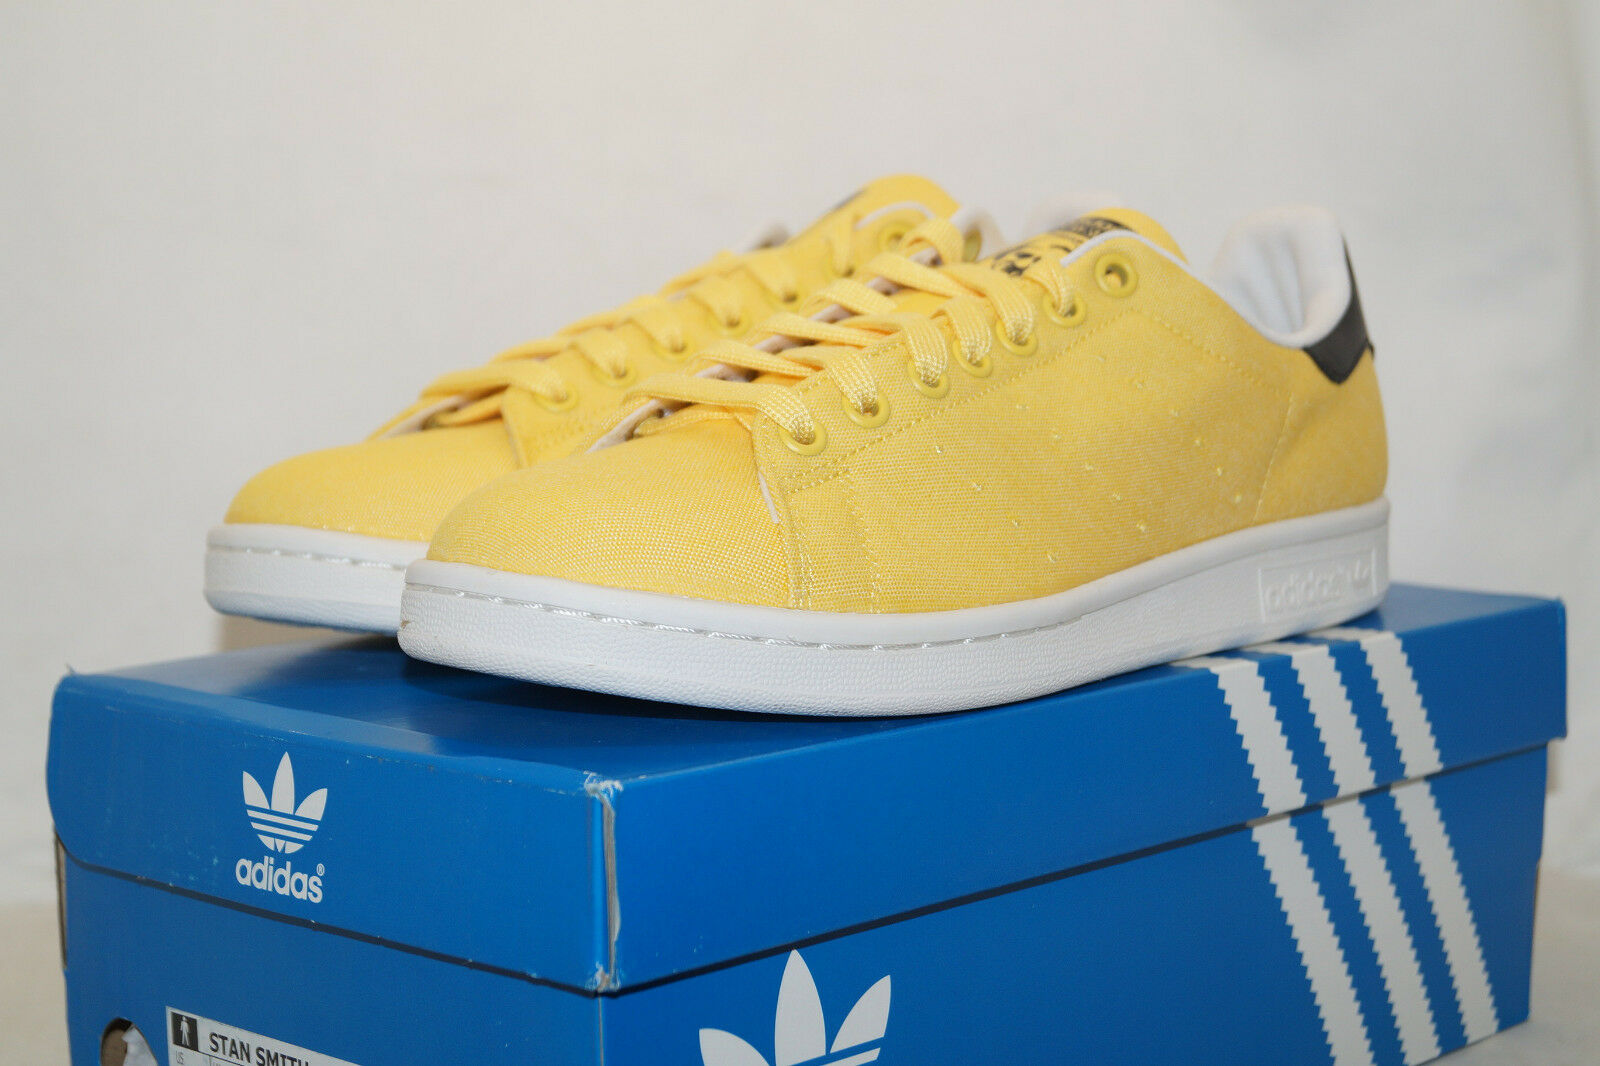 Adidas Originals Stan Smith UE 41.3 UK 7.5 amarillo amarillo s75112 Gomaespuma